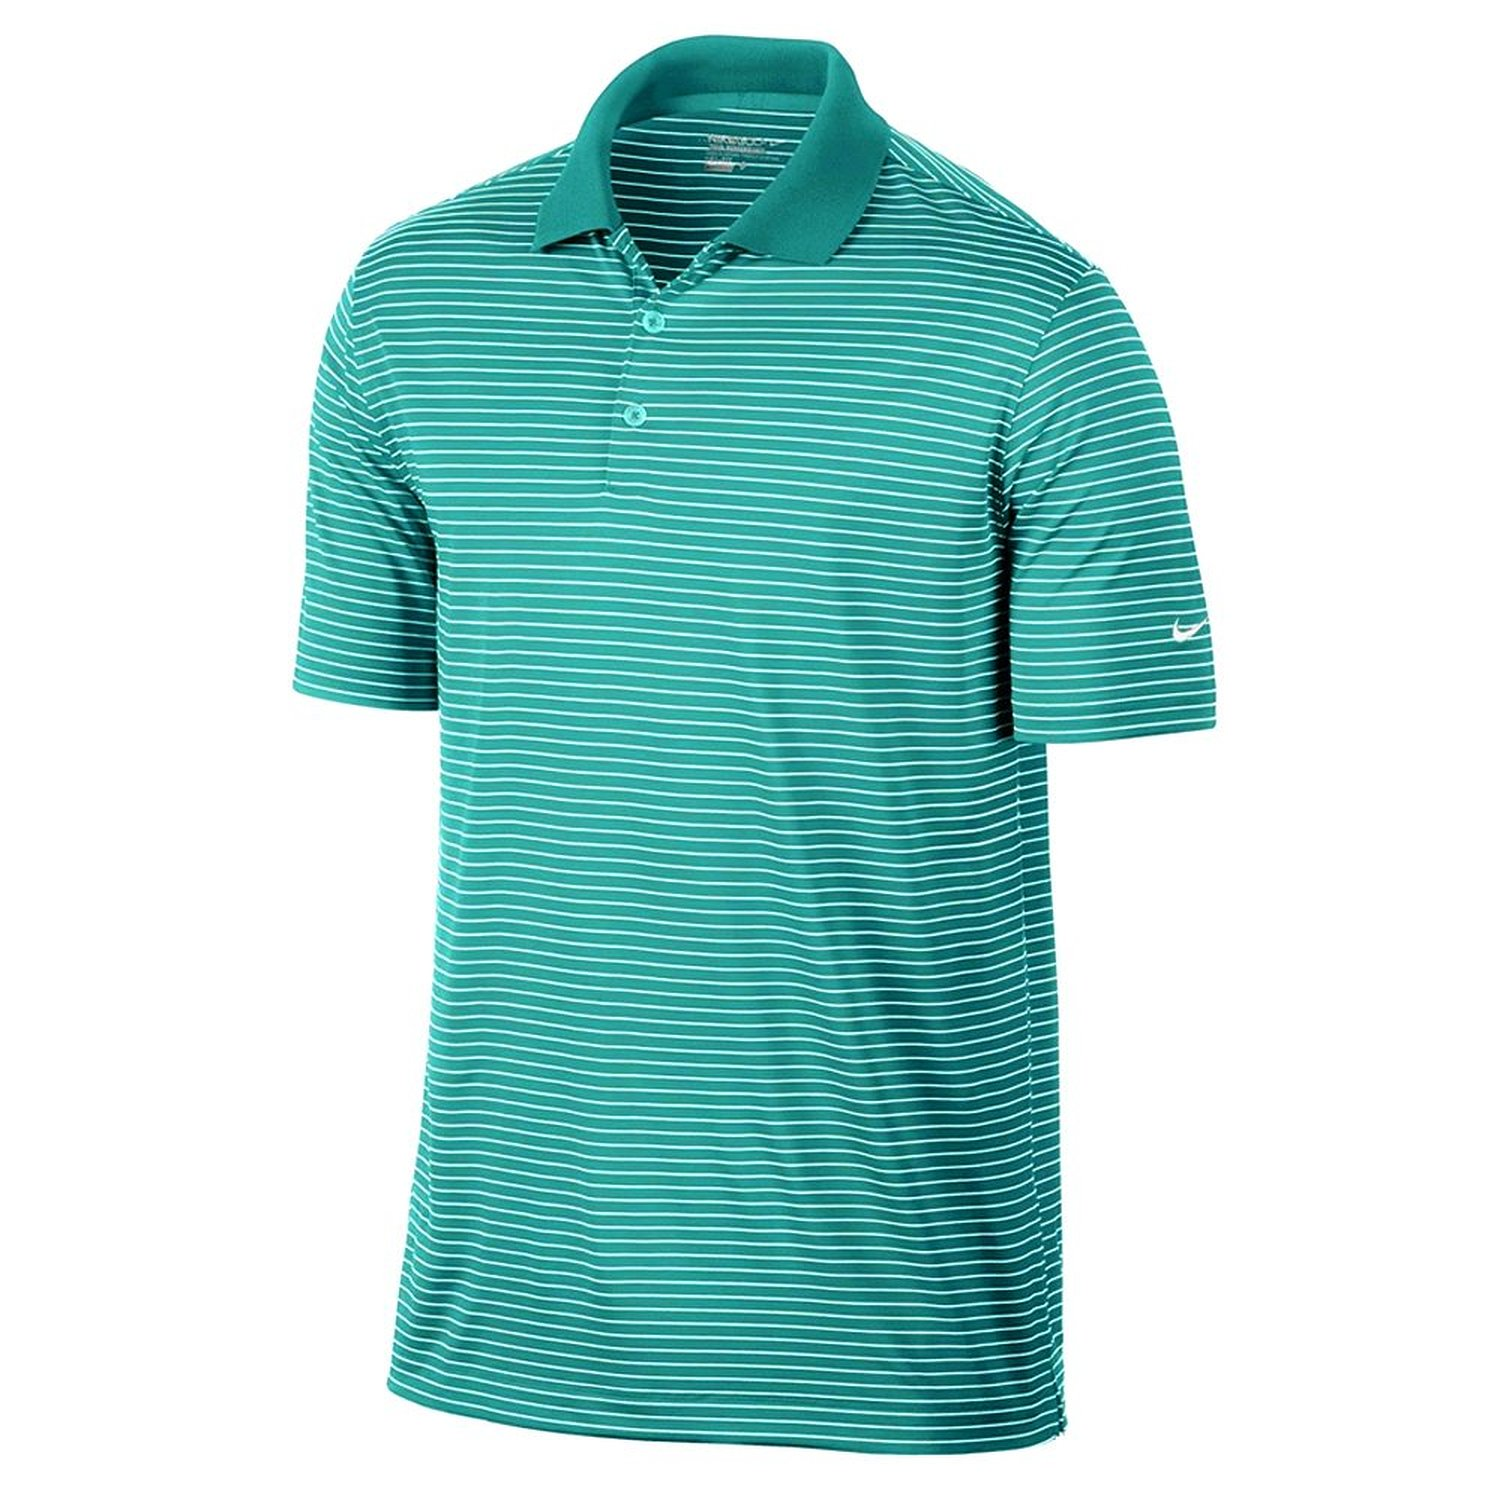 56f98316adce3 Buy Nike Golf Mens Victory Stripe Polo LT RETRO/WHITE in Cheap Price ...